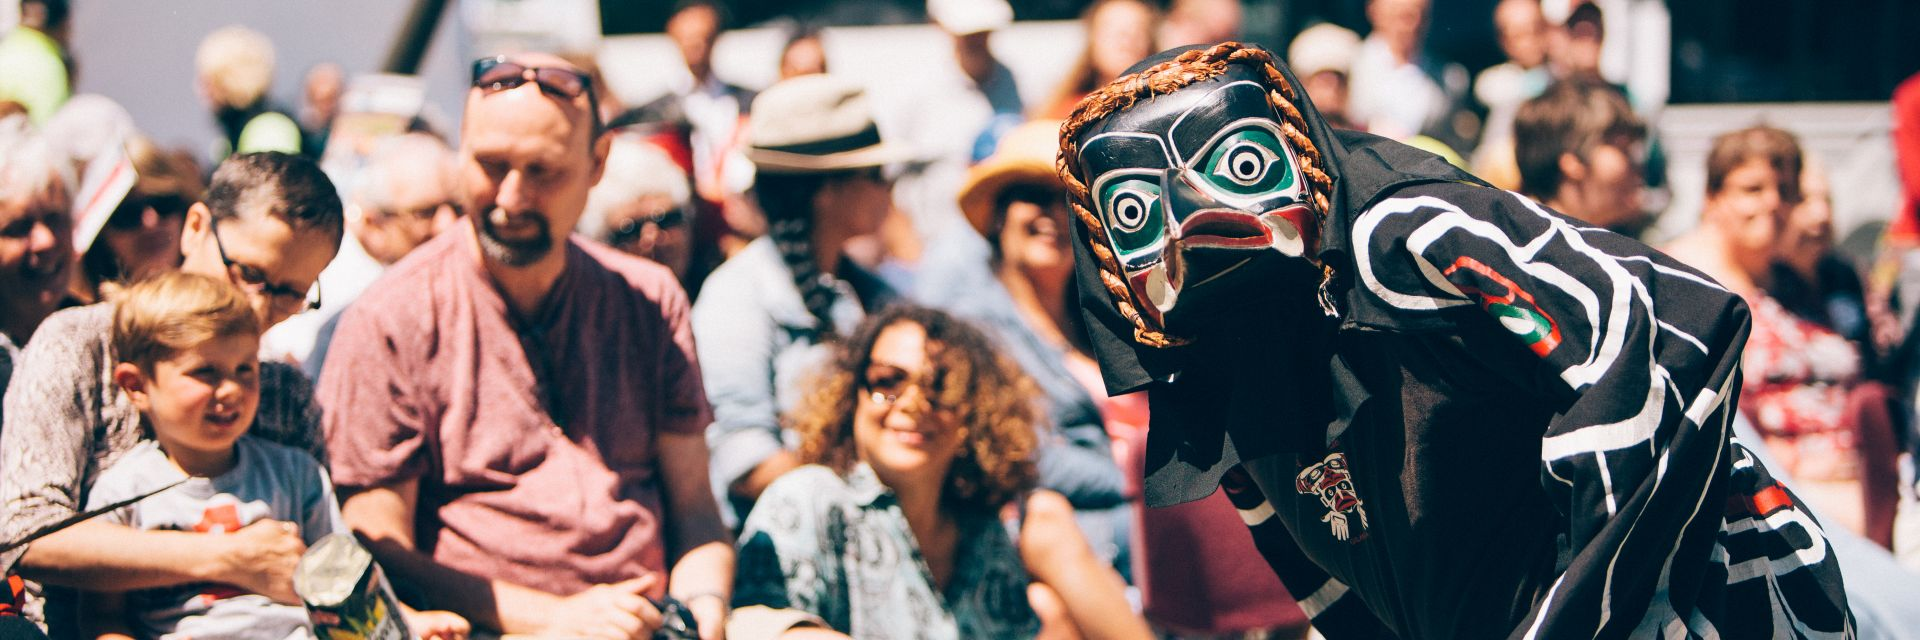 A dancer wearing a black mask and traditional Indigenous clothing performs for a crowd